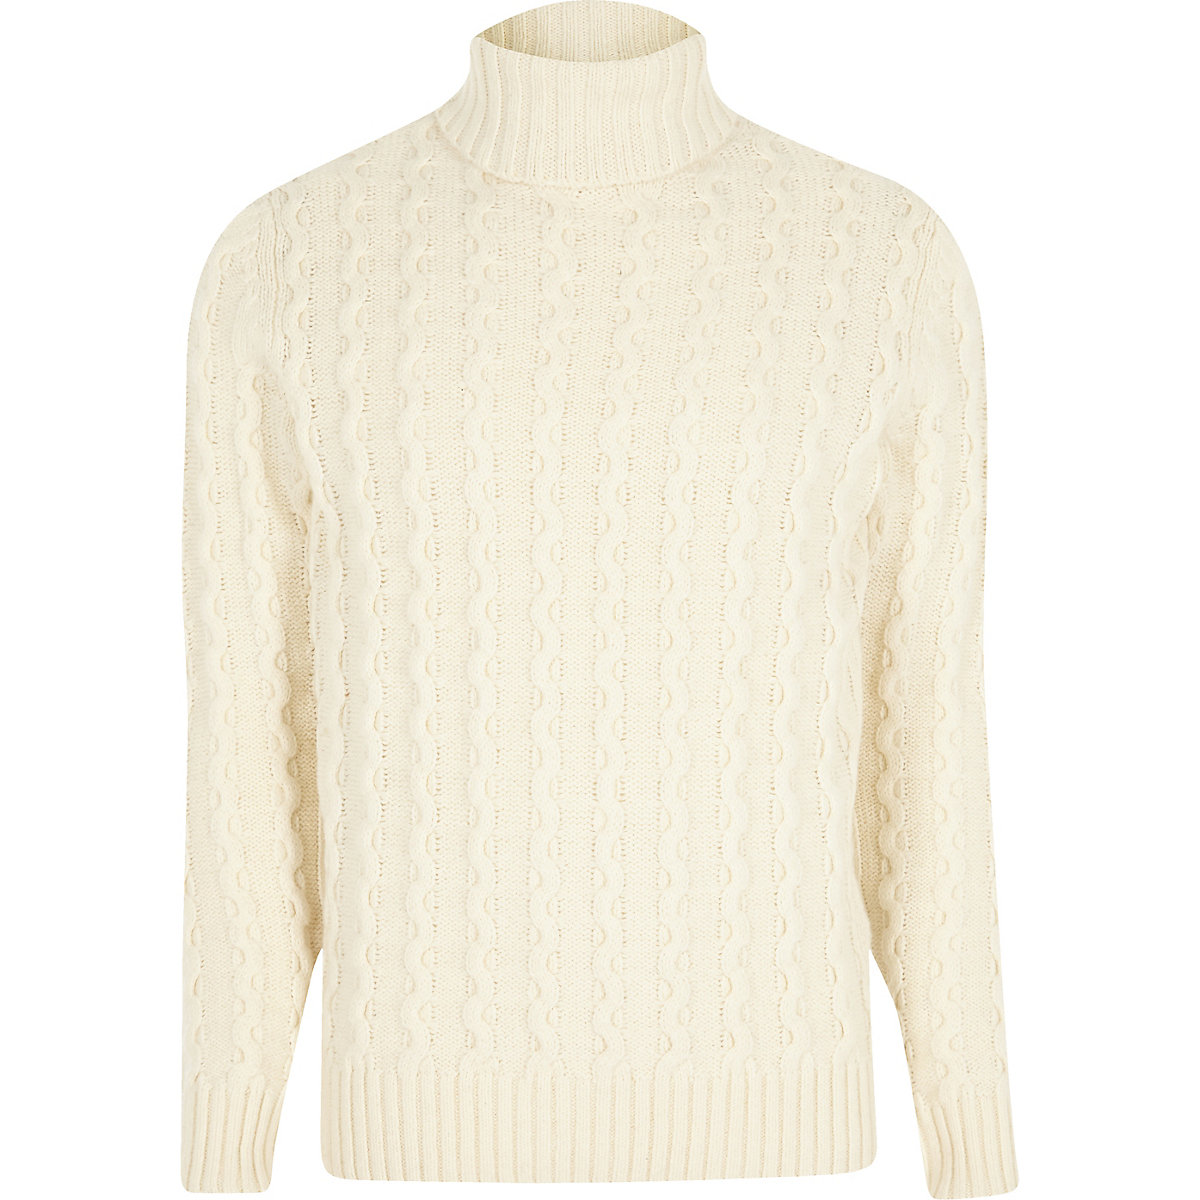 Jack & Jones white knit roll neck sweater